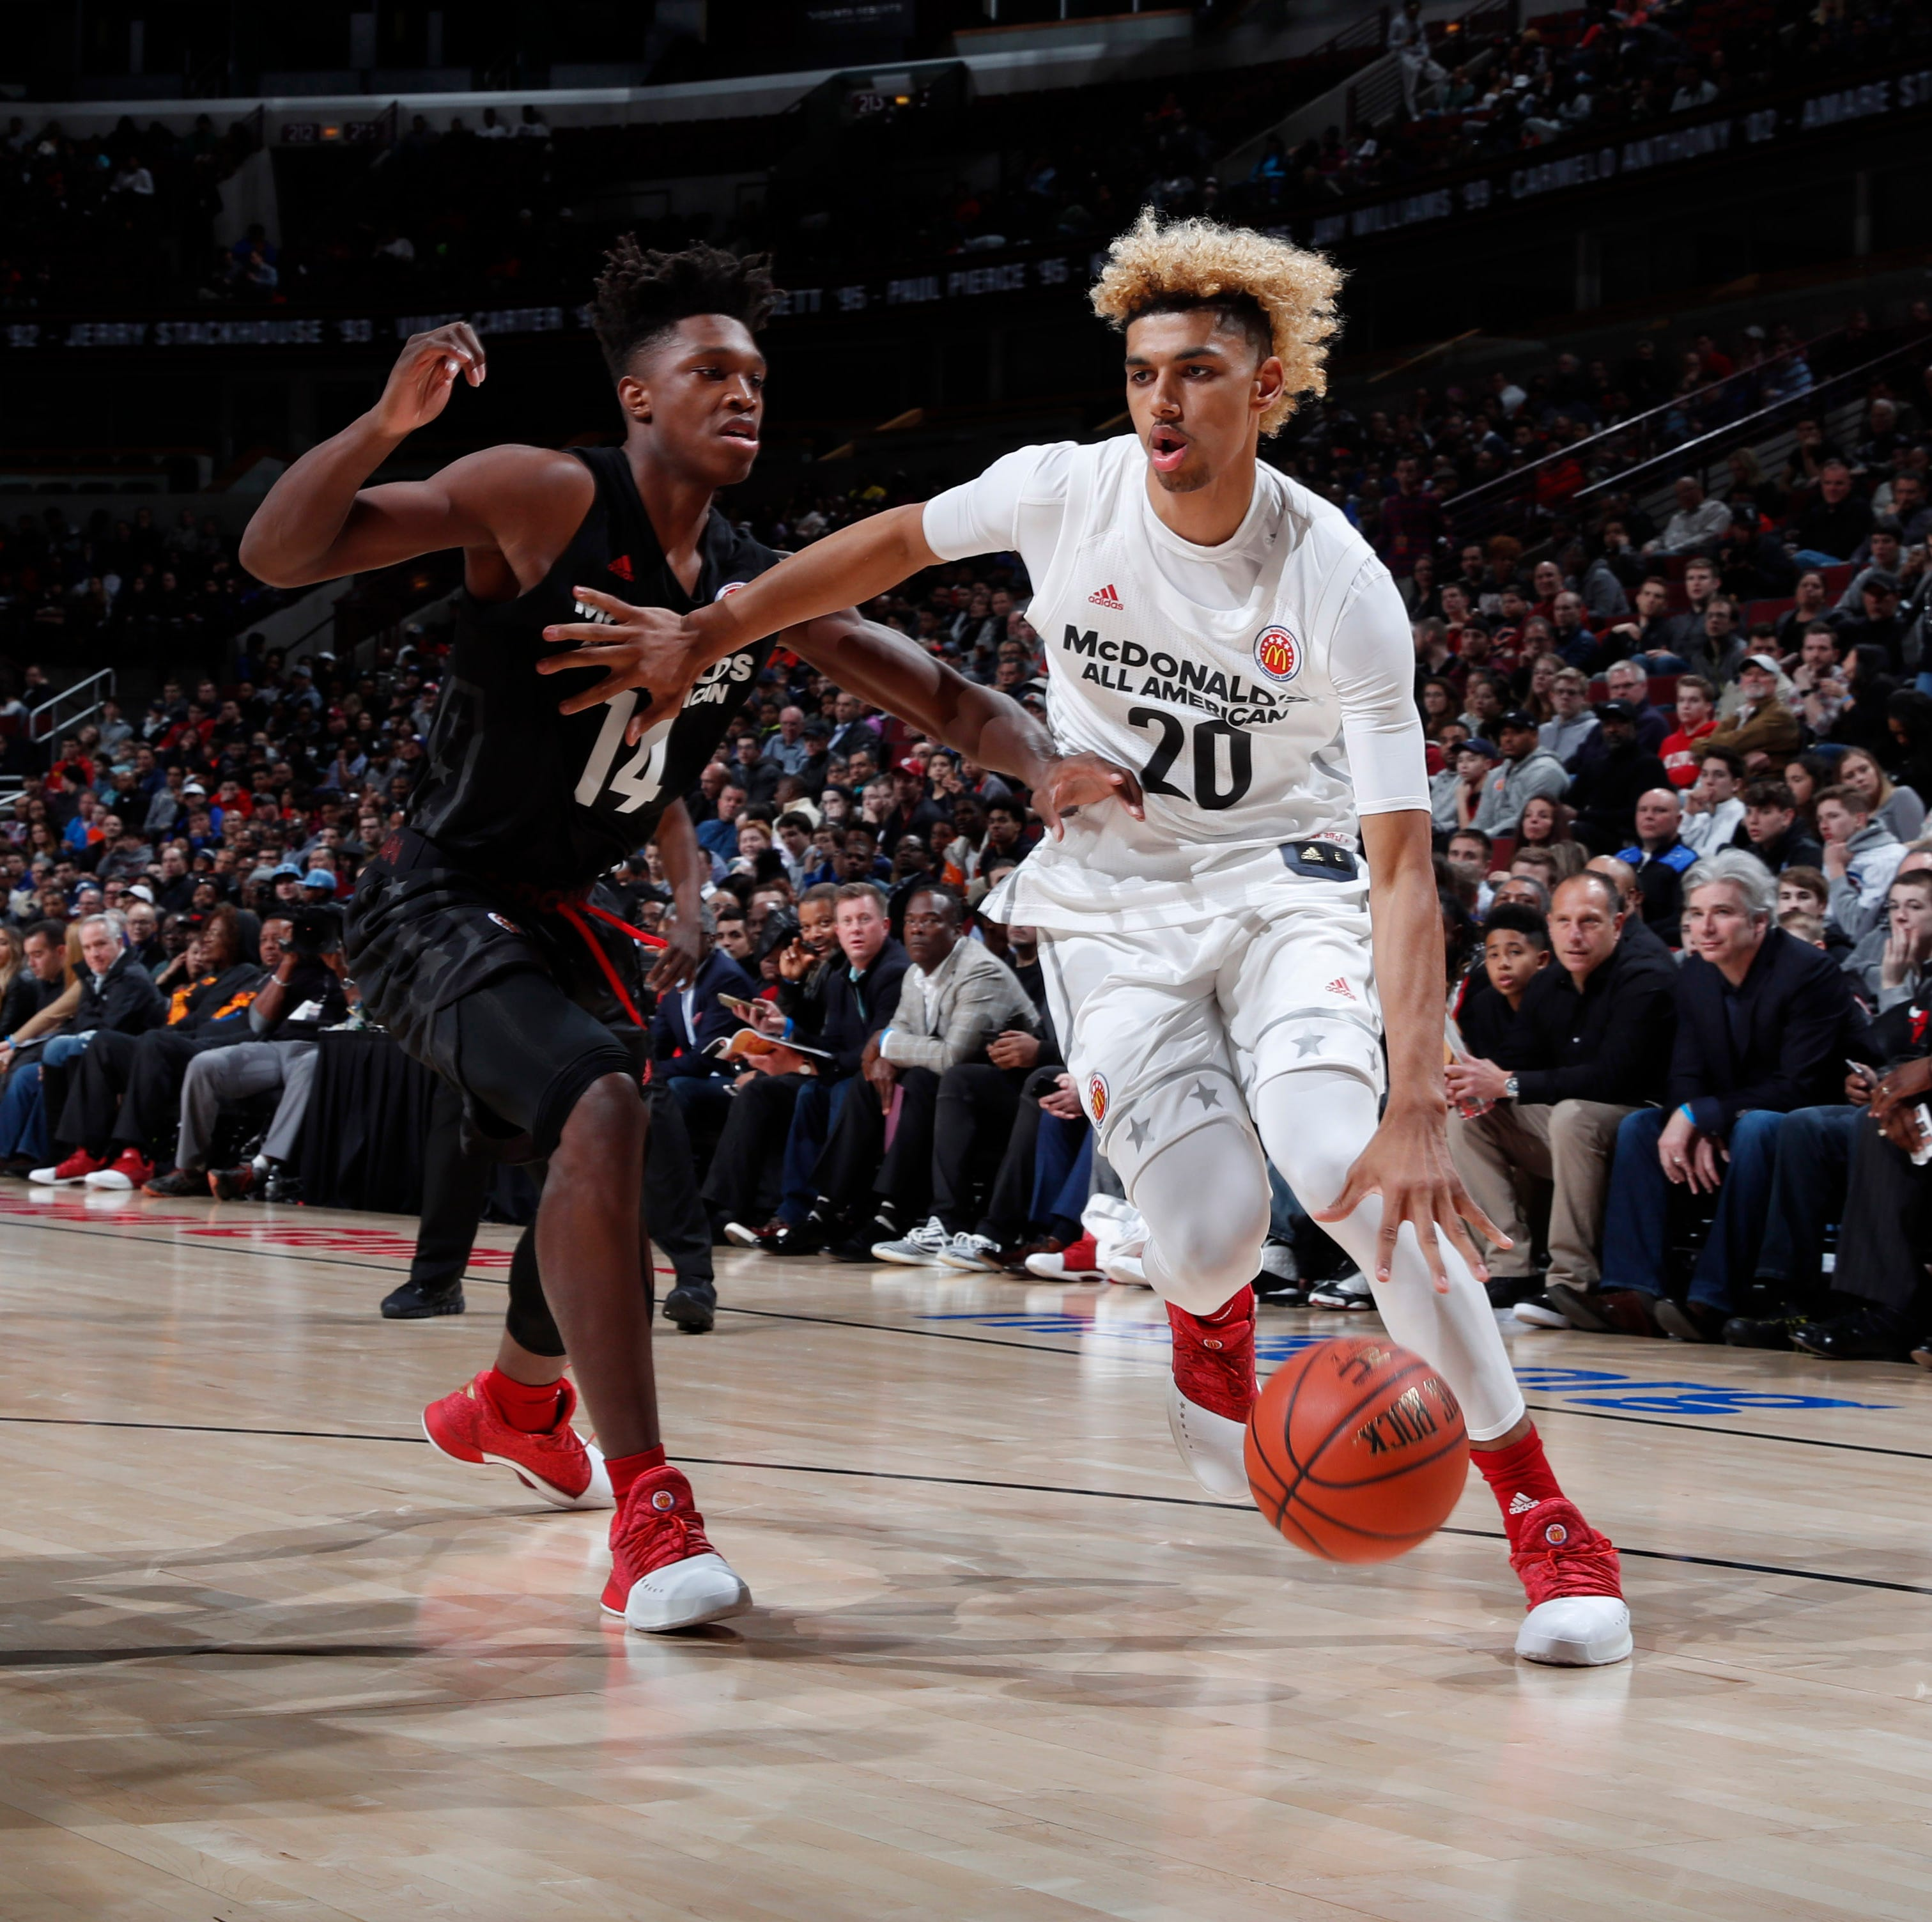 Brian Bowen II tries to put Louisville recruiting scandal behind him, start new narrative on NBA path